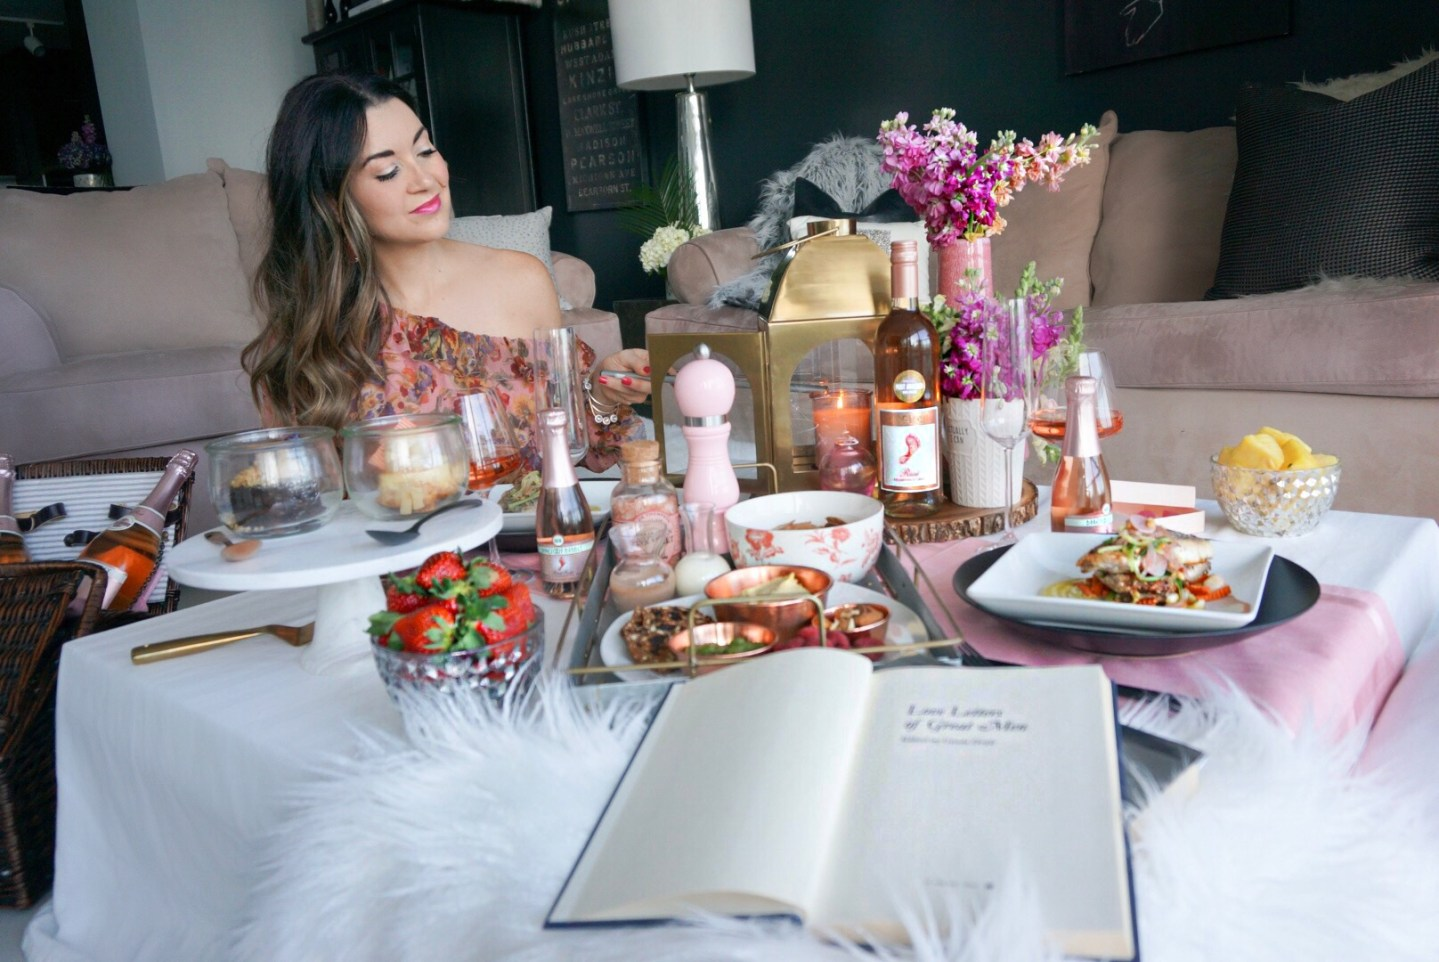 A Romantic Indoor Picnic Ideas And Living Room Setup For Valentine S Day